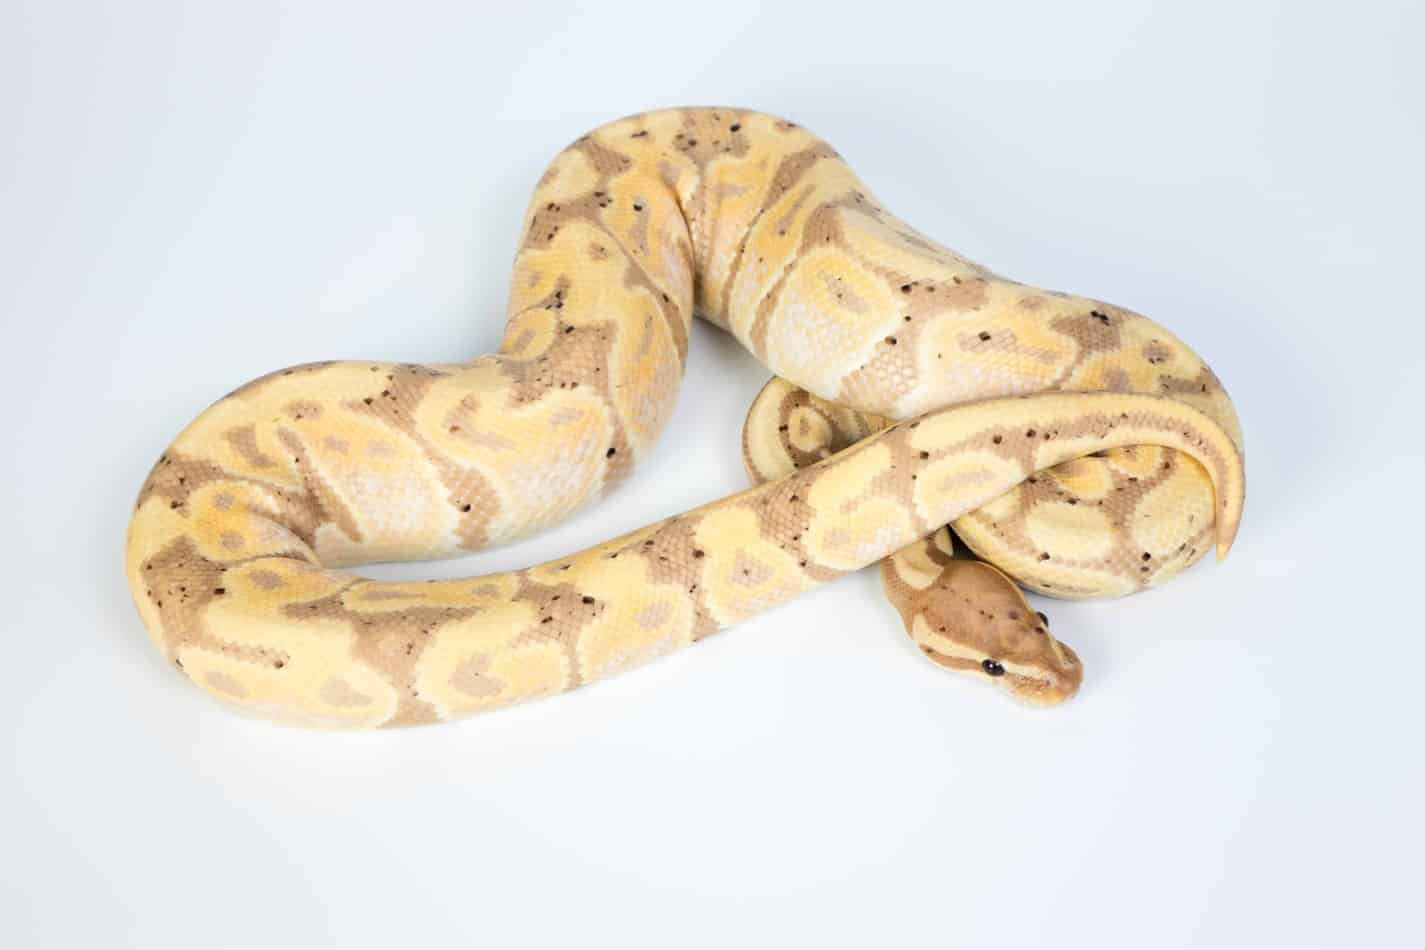 Ball Python Morphs: A Complete List with Pictures